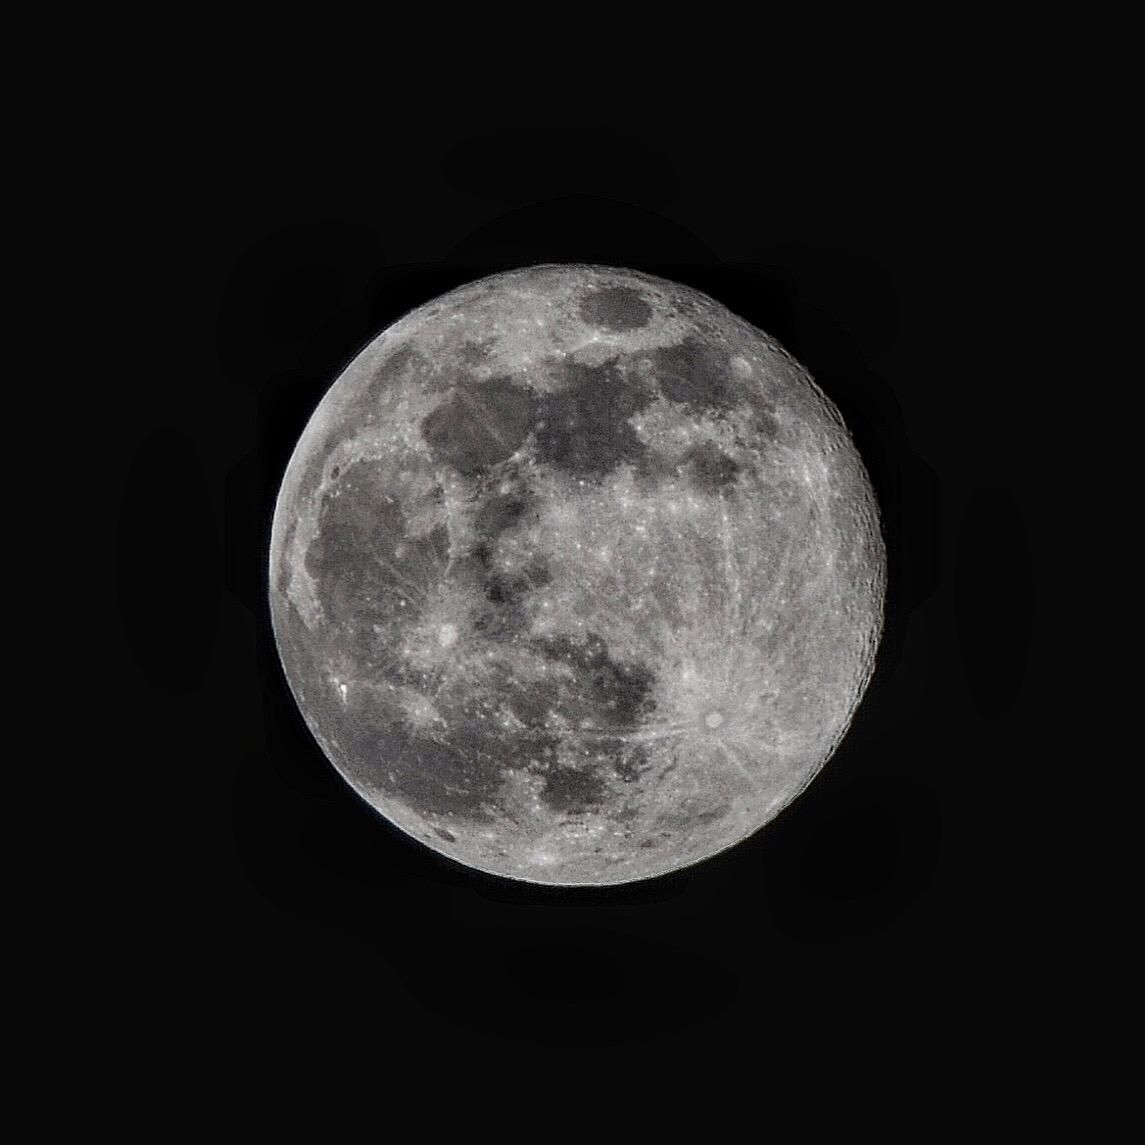 ITAP of the moon#PHOTO #CAPTURE #NATURE #INCREDIBLE